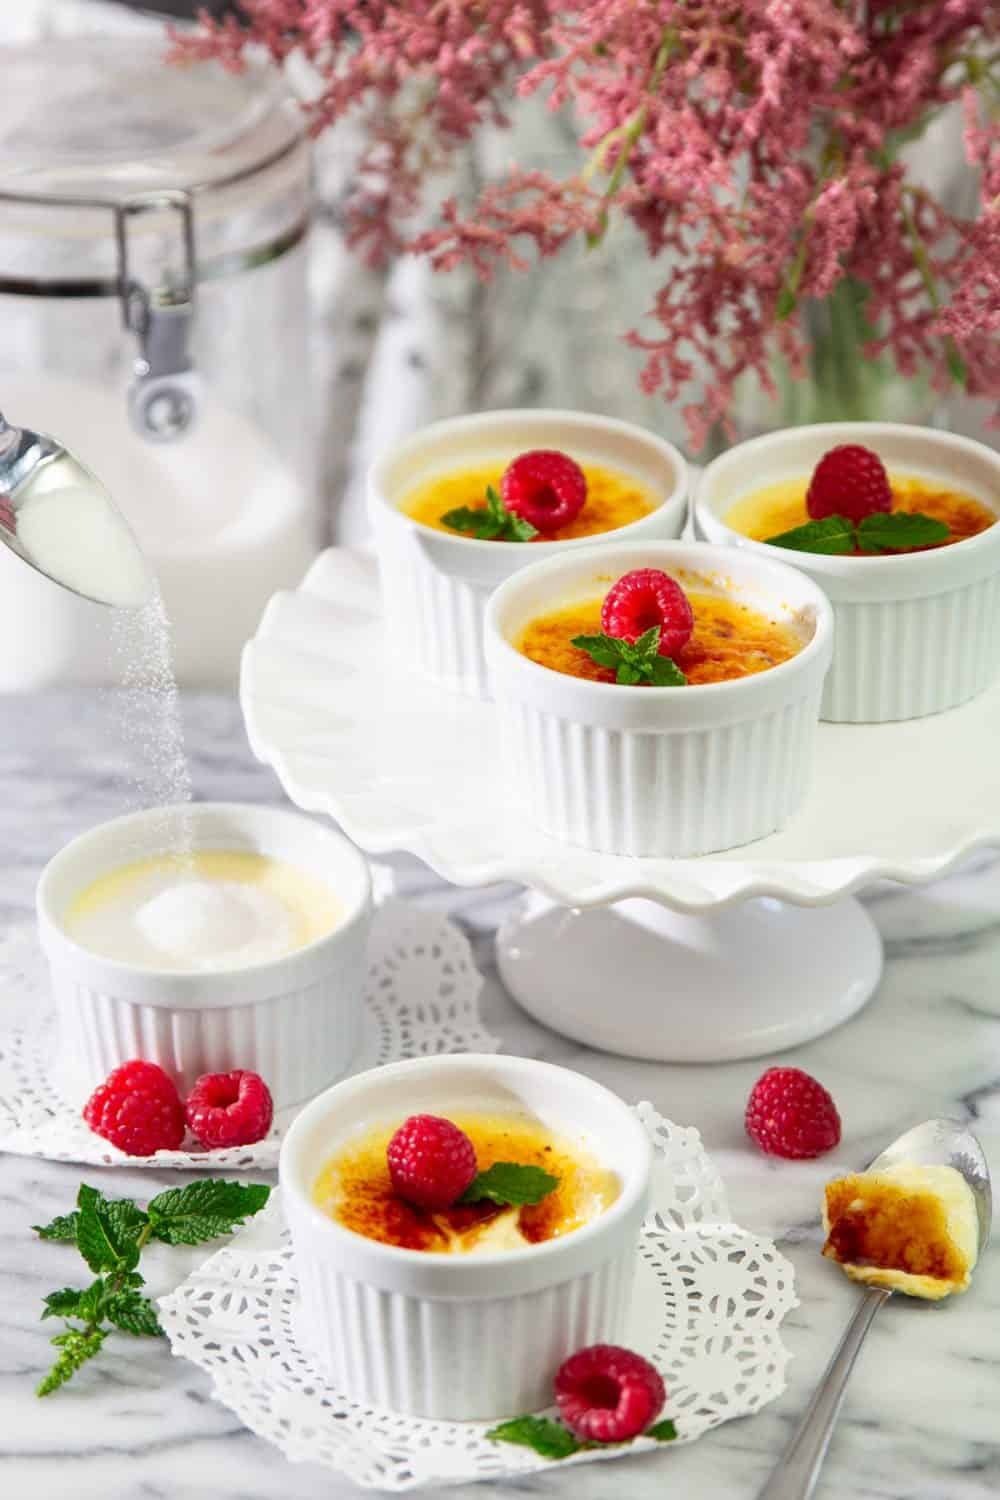 white chocolate creme brulee with raspberries and mind on top